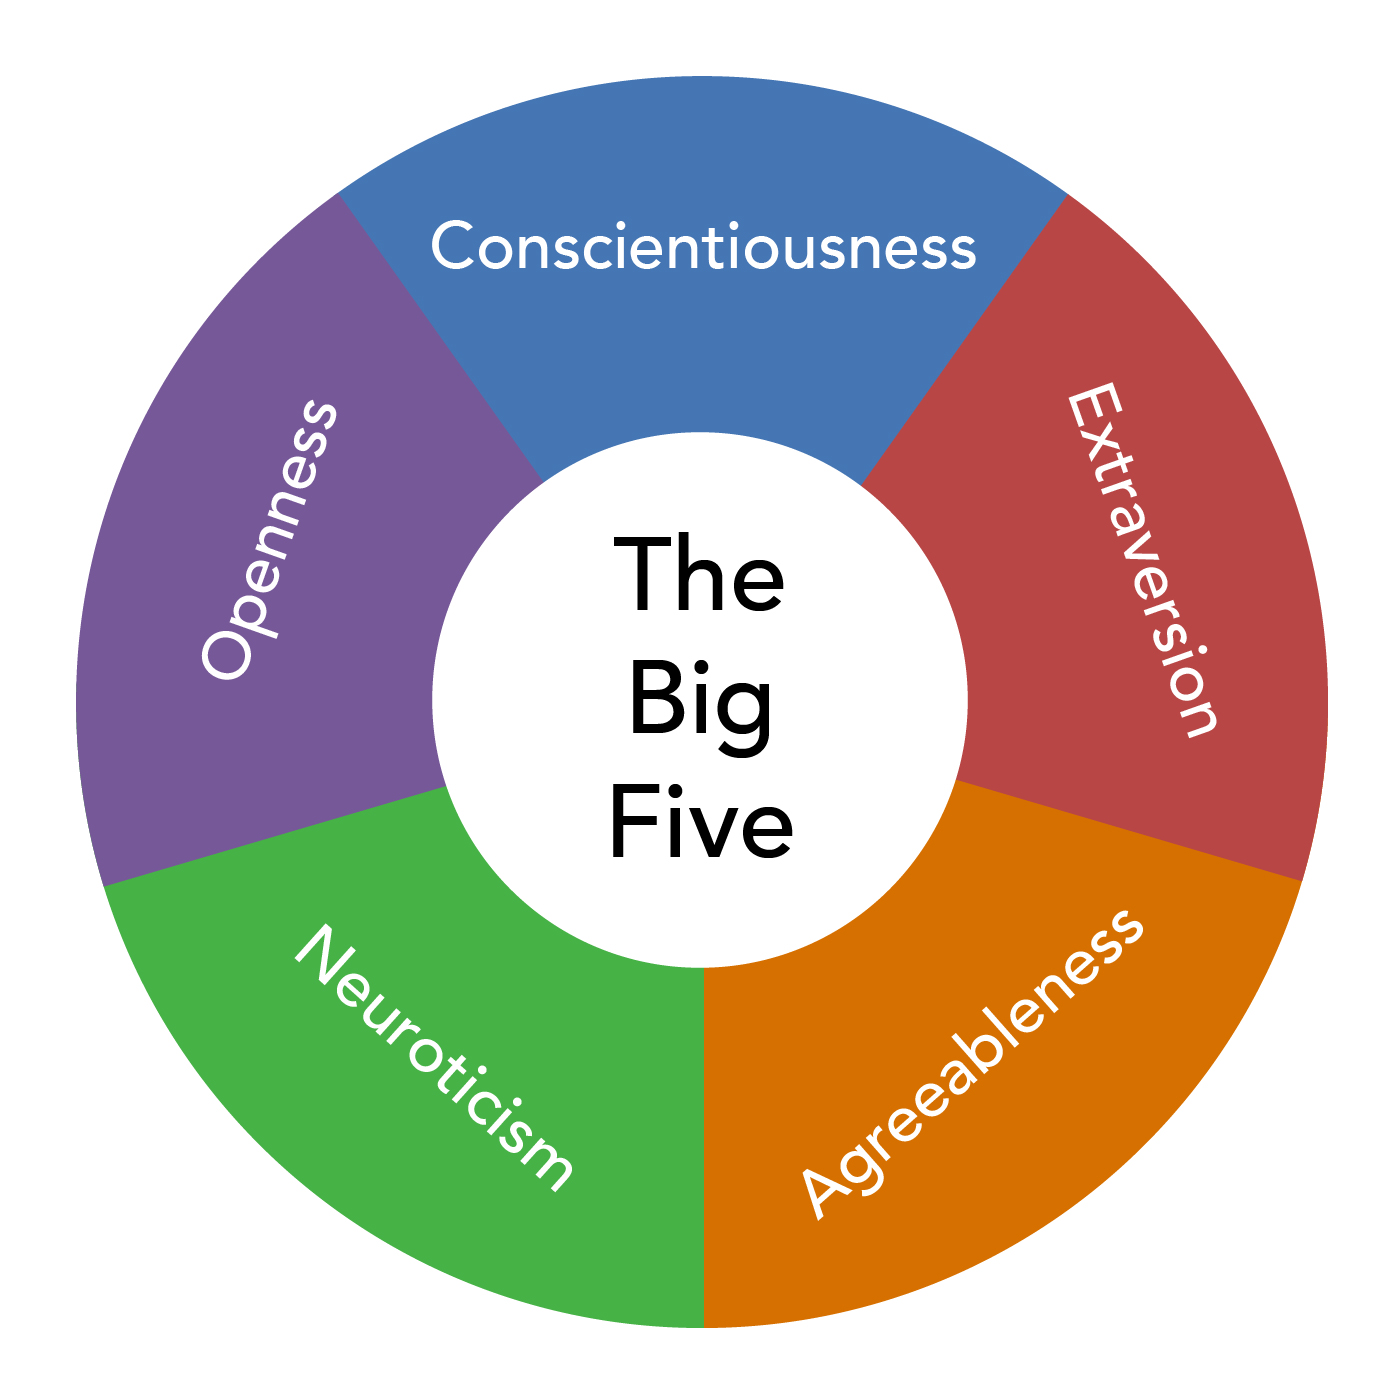 A circle with five segments. The segments are labelled with the big five personality traits: openness, conscientiousness, extraversion, agreeableness, and neuroticism.